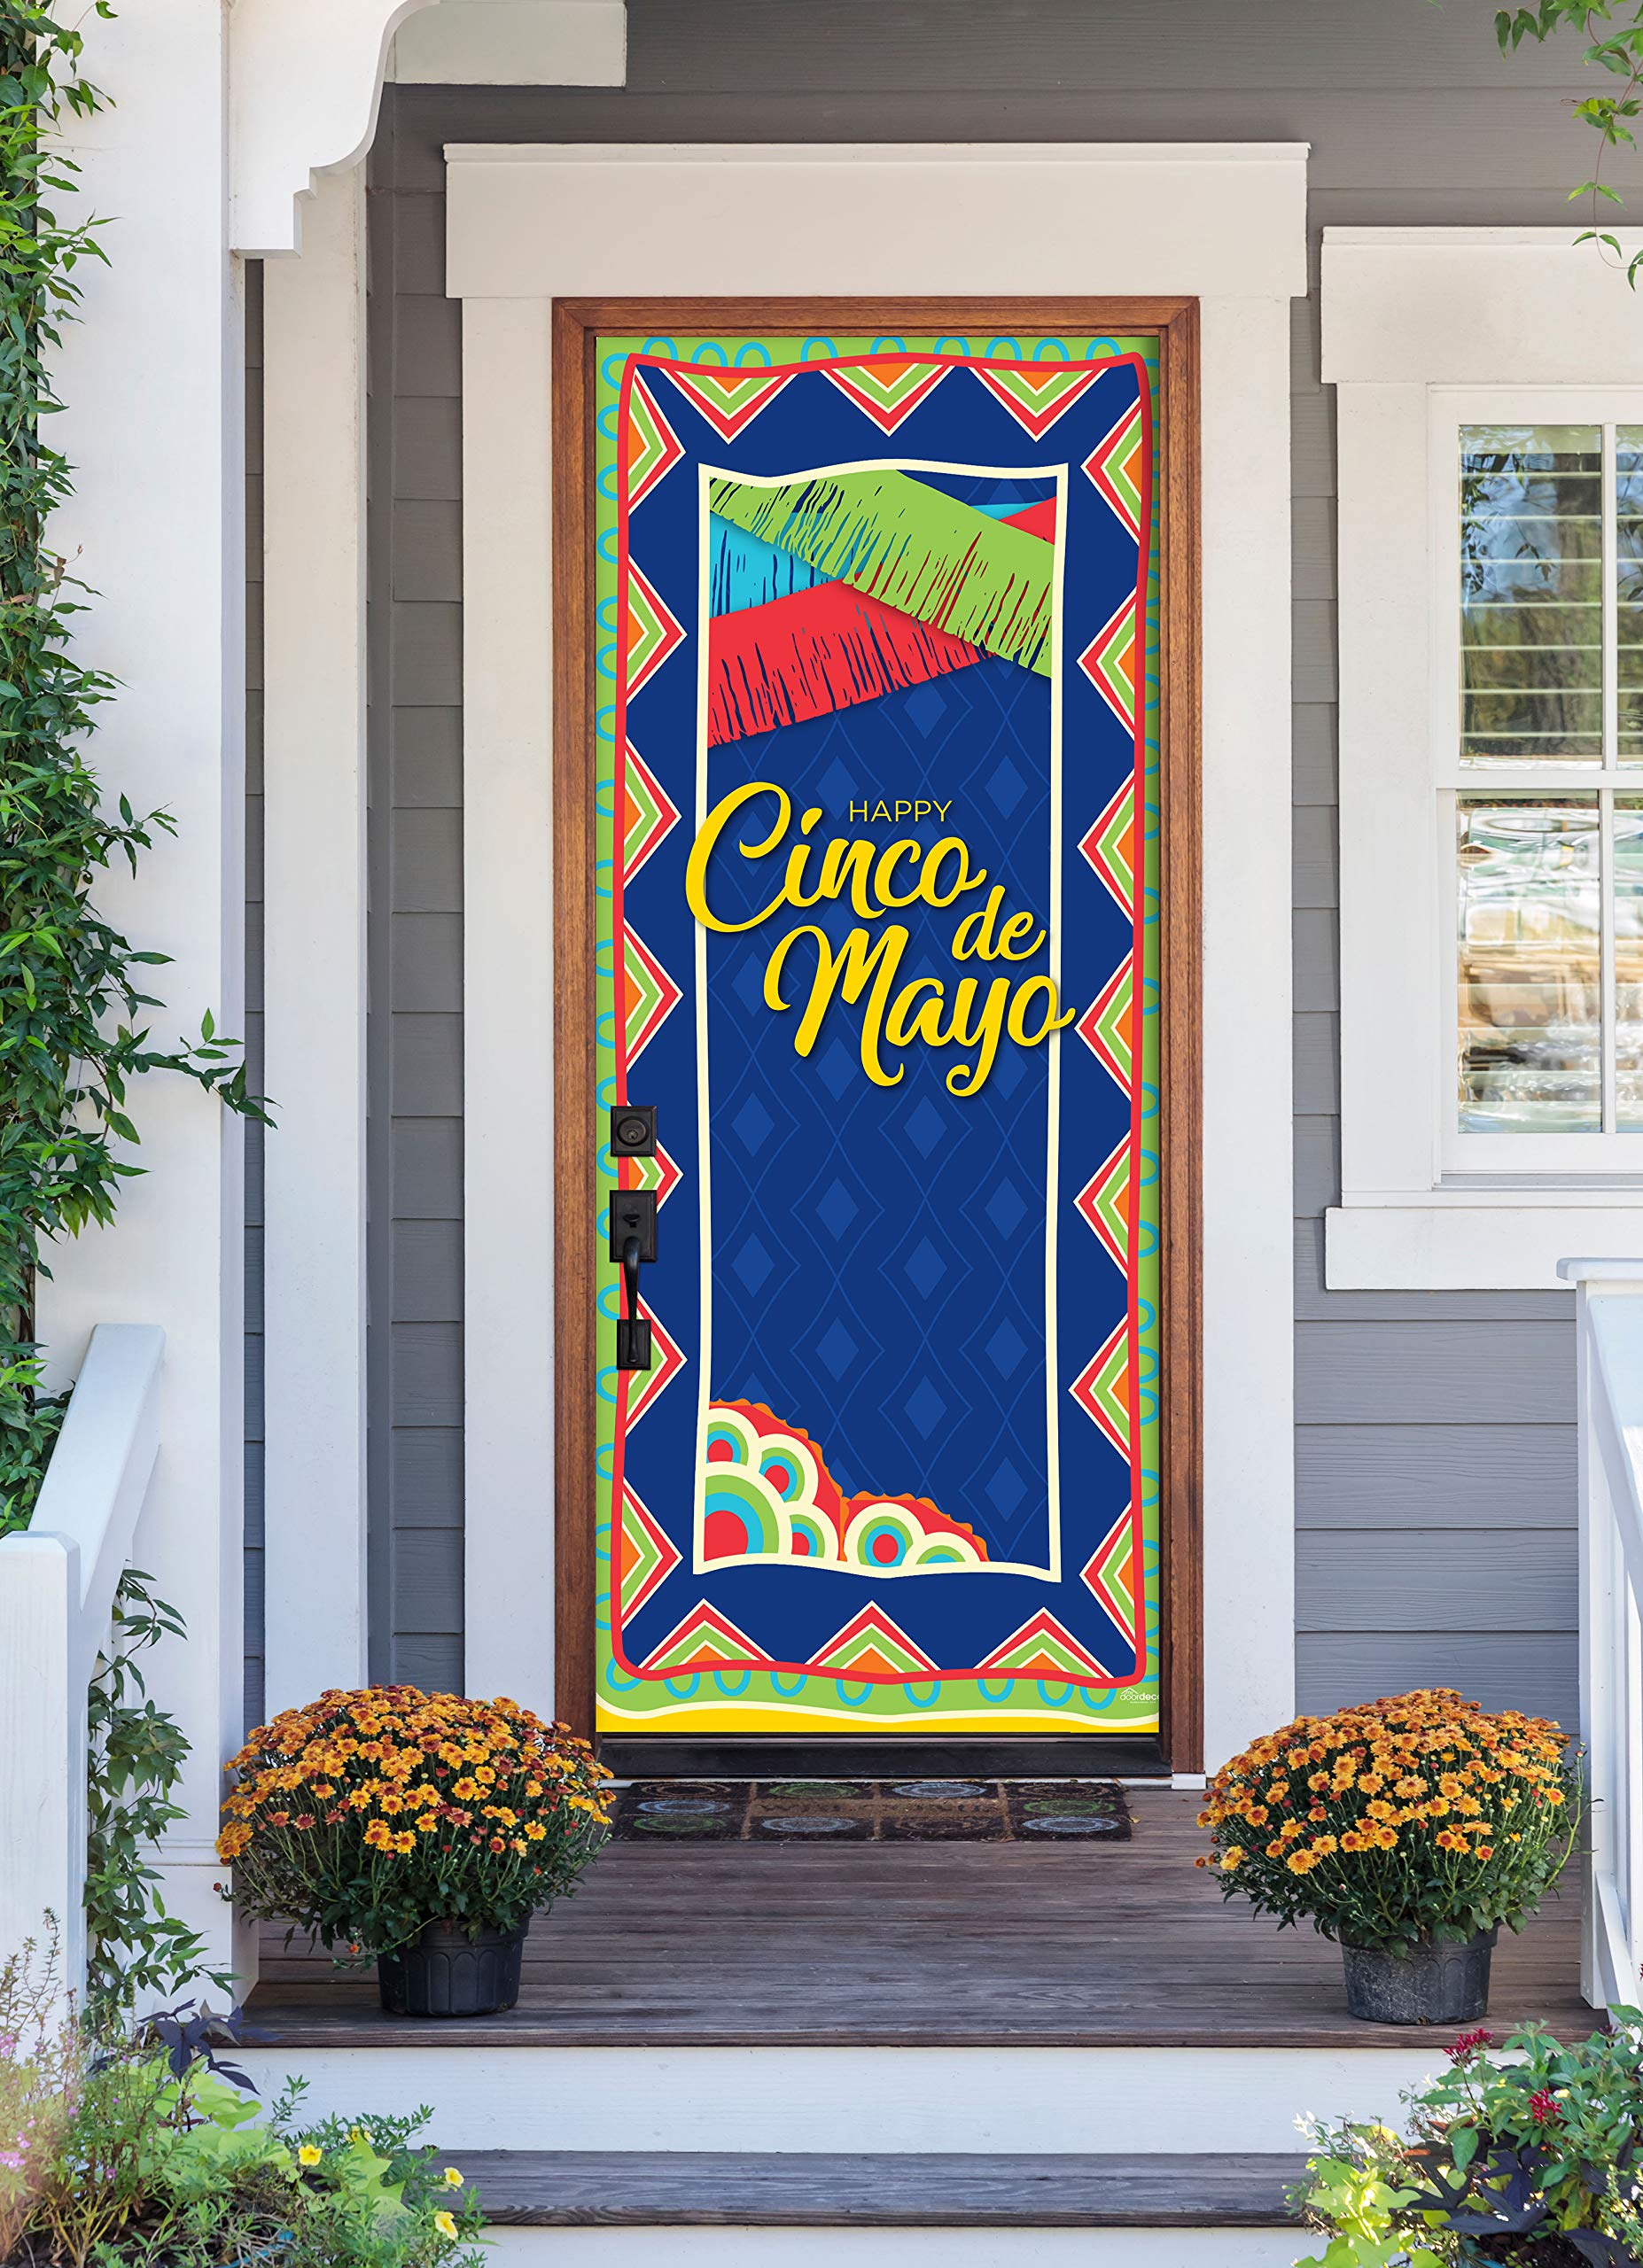 Victory Corps Happy Cinco de Mayo Pattern - Holiday Front Door Banner Mural Sign Décor 36'' x 80'' Front Door - The Original Holiday Front Door Banner Decor